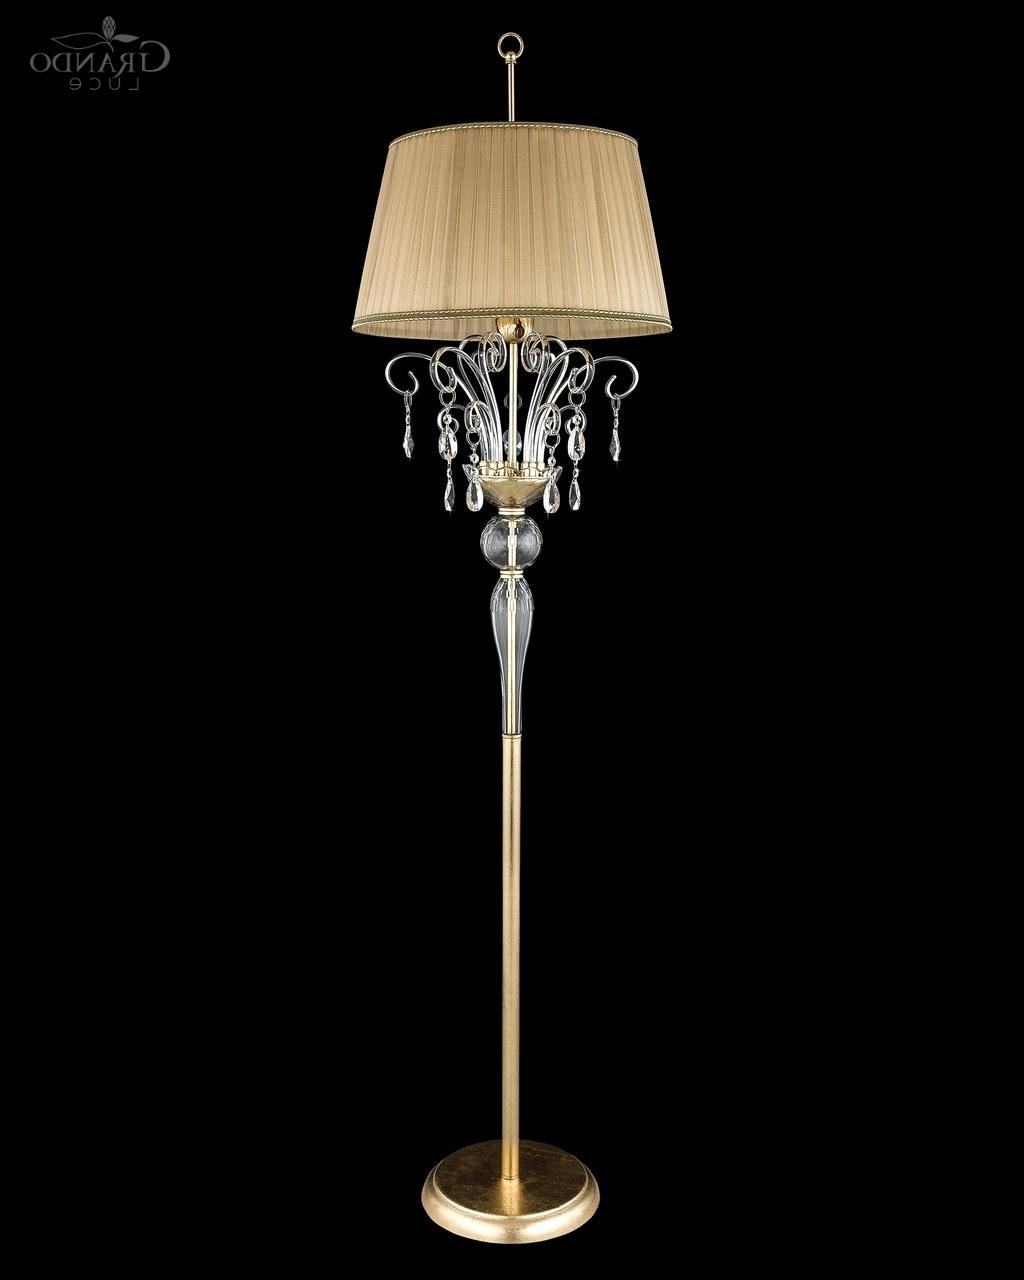 120/fl Gold Leaf Crystal Floor Lamp – Grandoluce With Regard To Current Crystal Chandelier Standing Lamps (View 1 of 20)